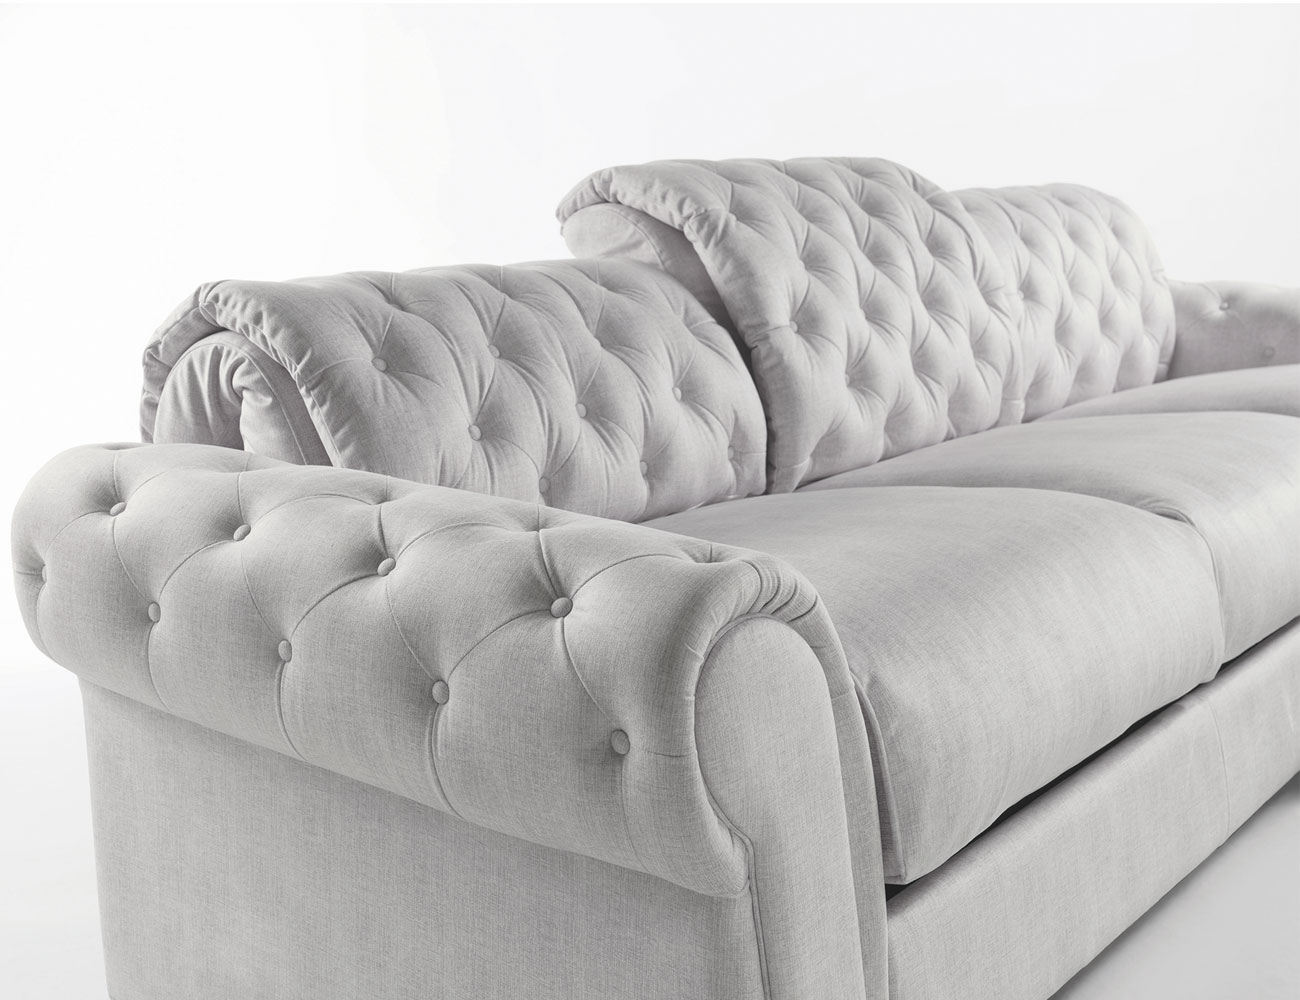 Sofa chaiselongue gran lujo decorativo capitone blanco tela 140